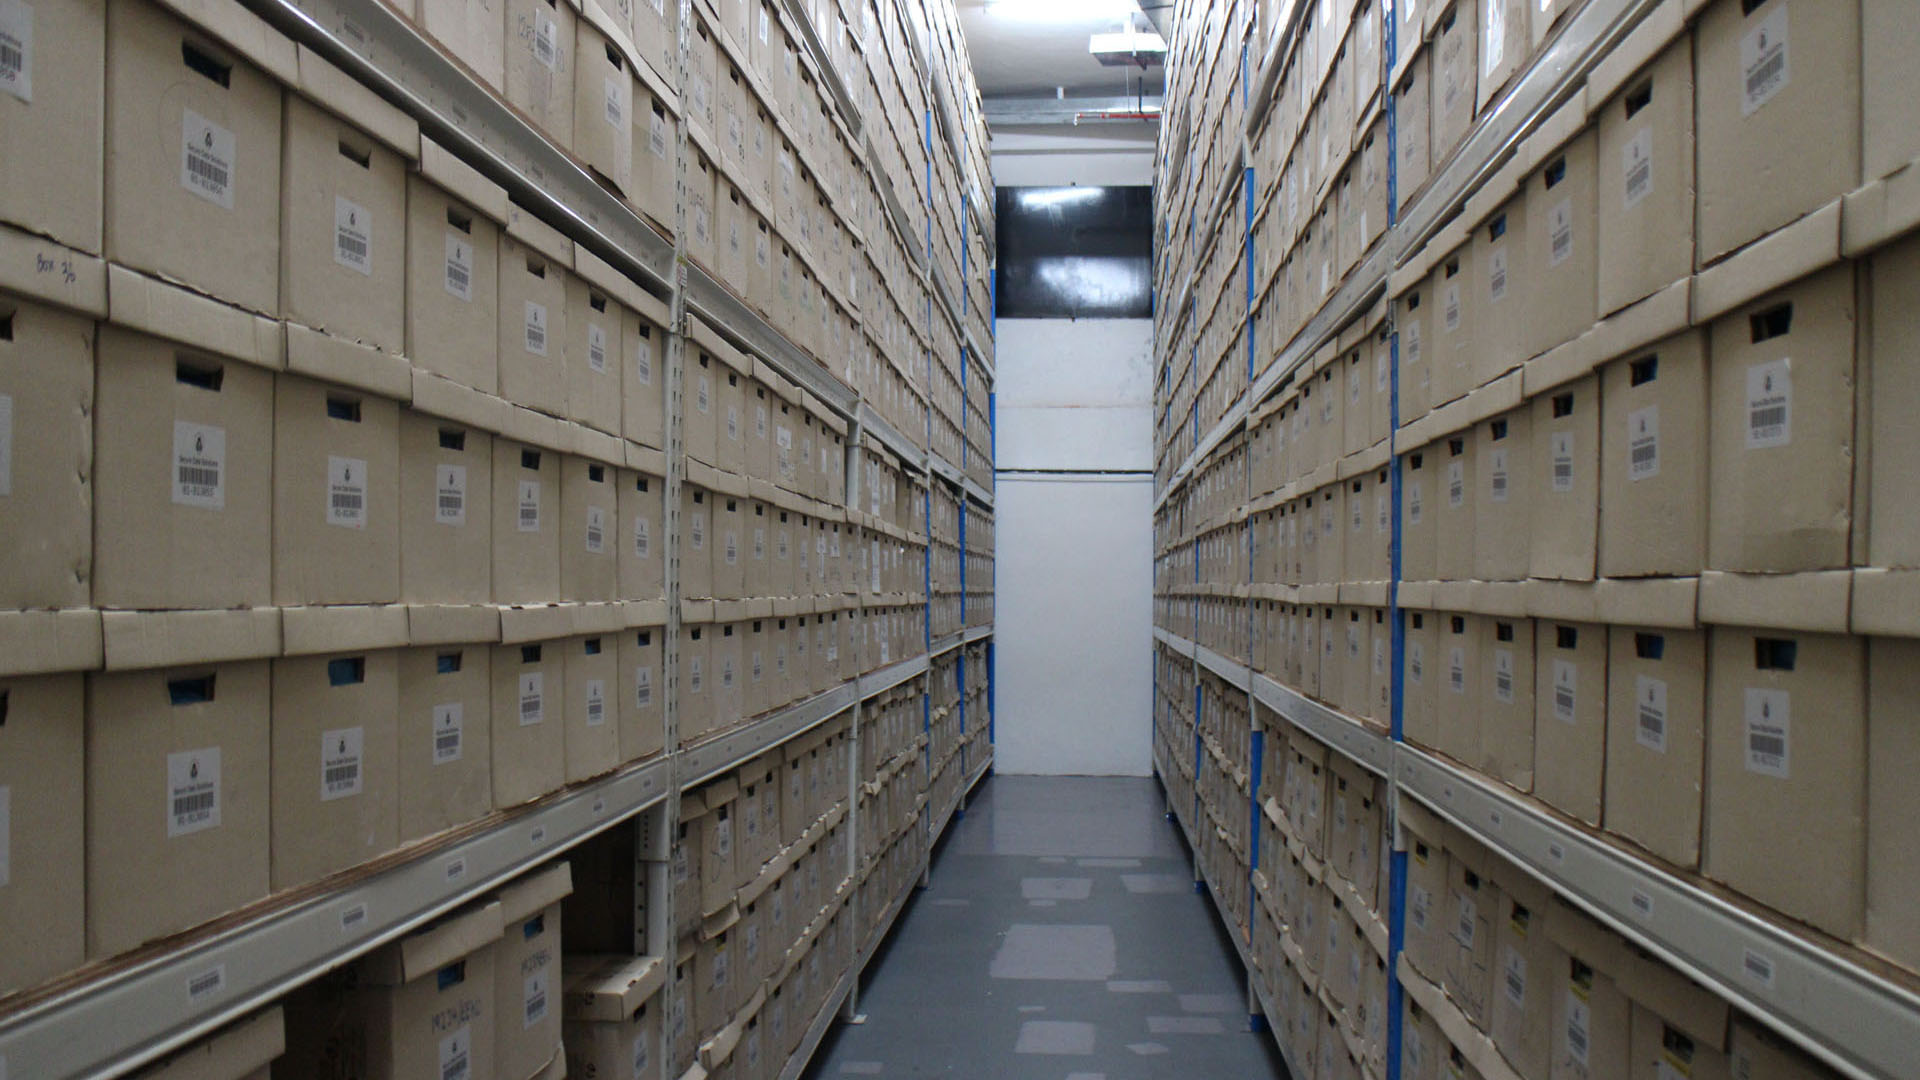 Using Office Storage Solutions to Keep Your Work Area Systematic